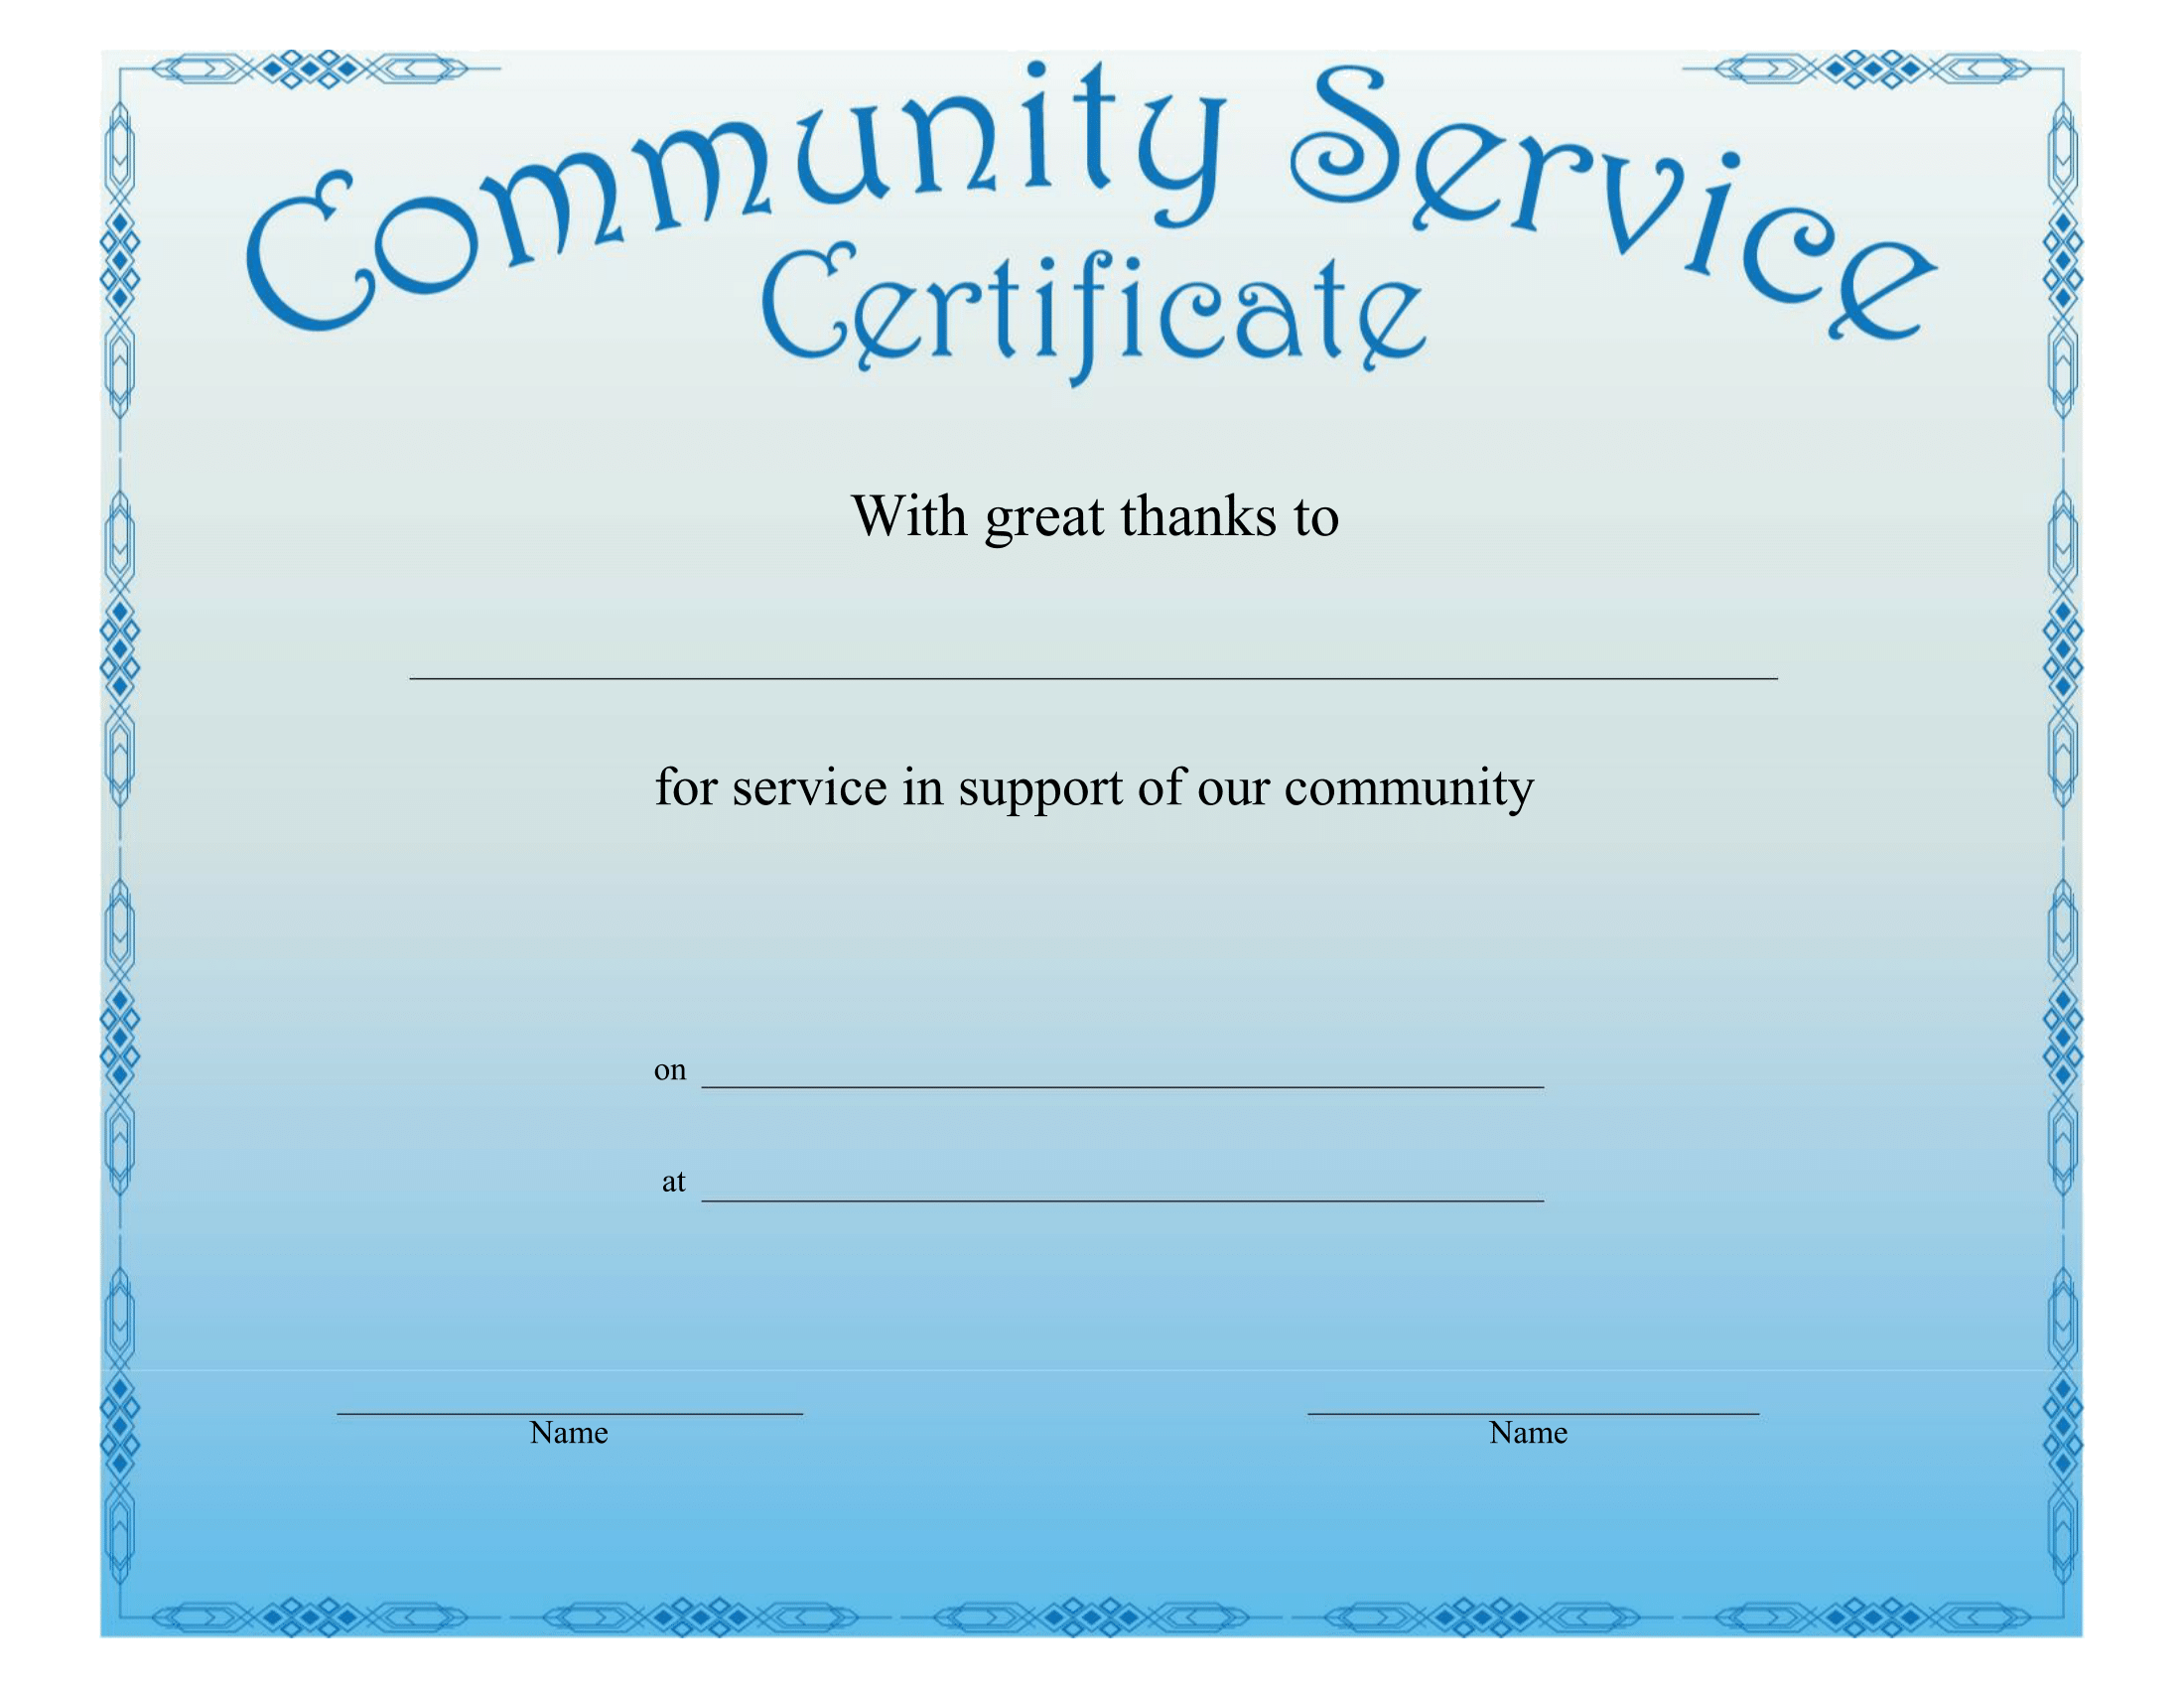 community service certificate template image collections